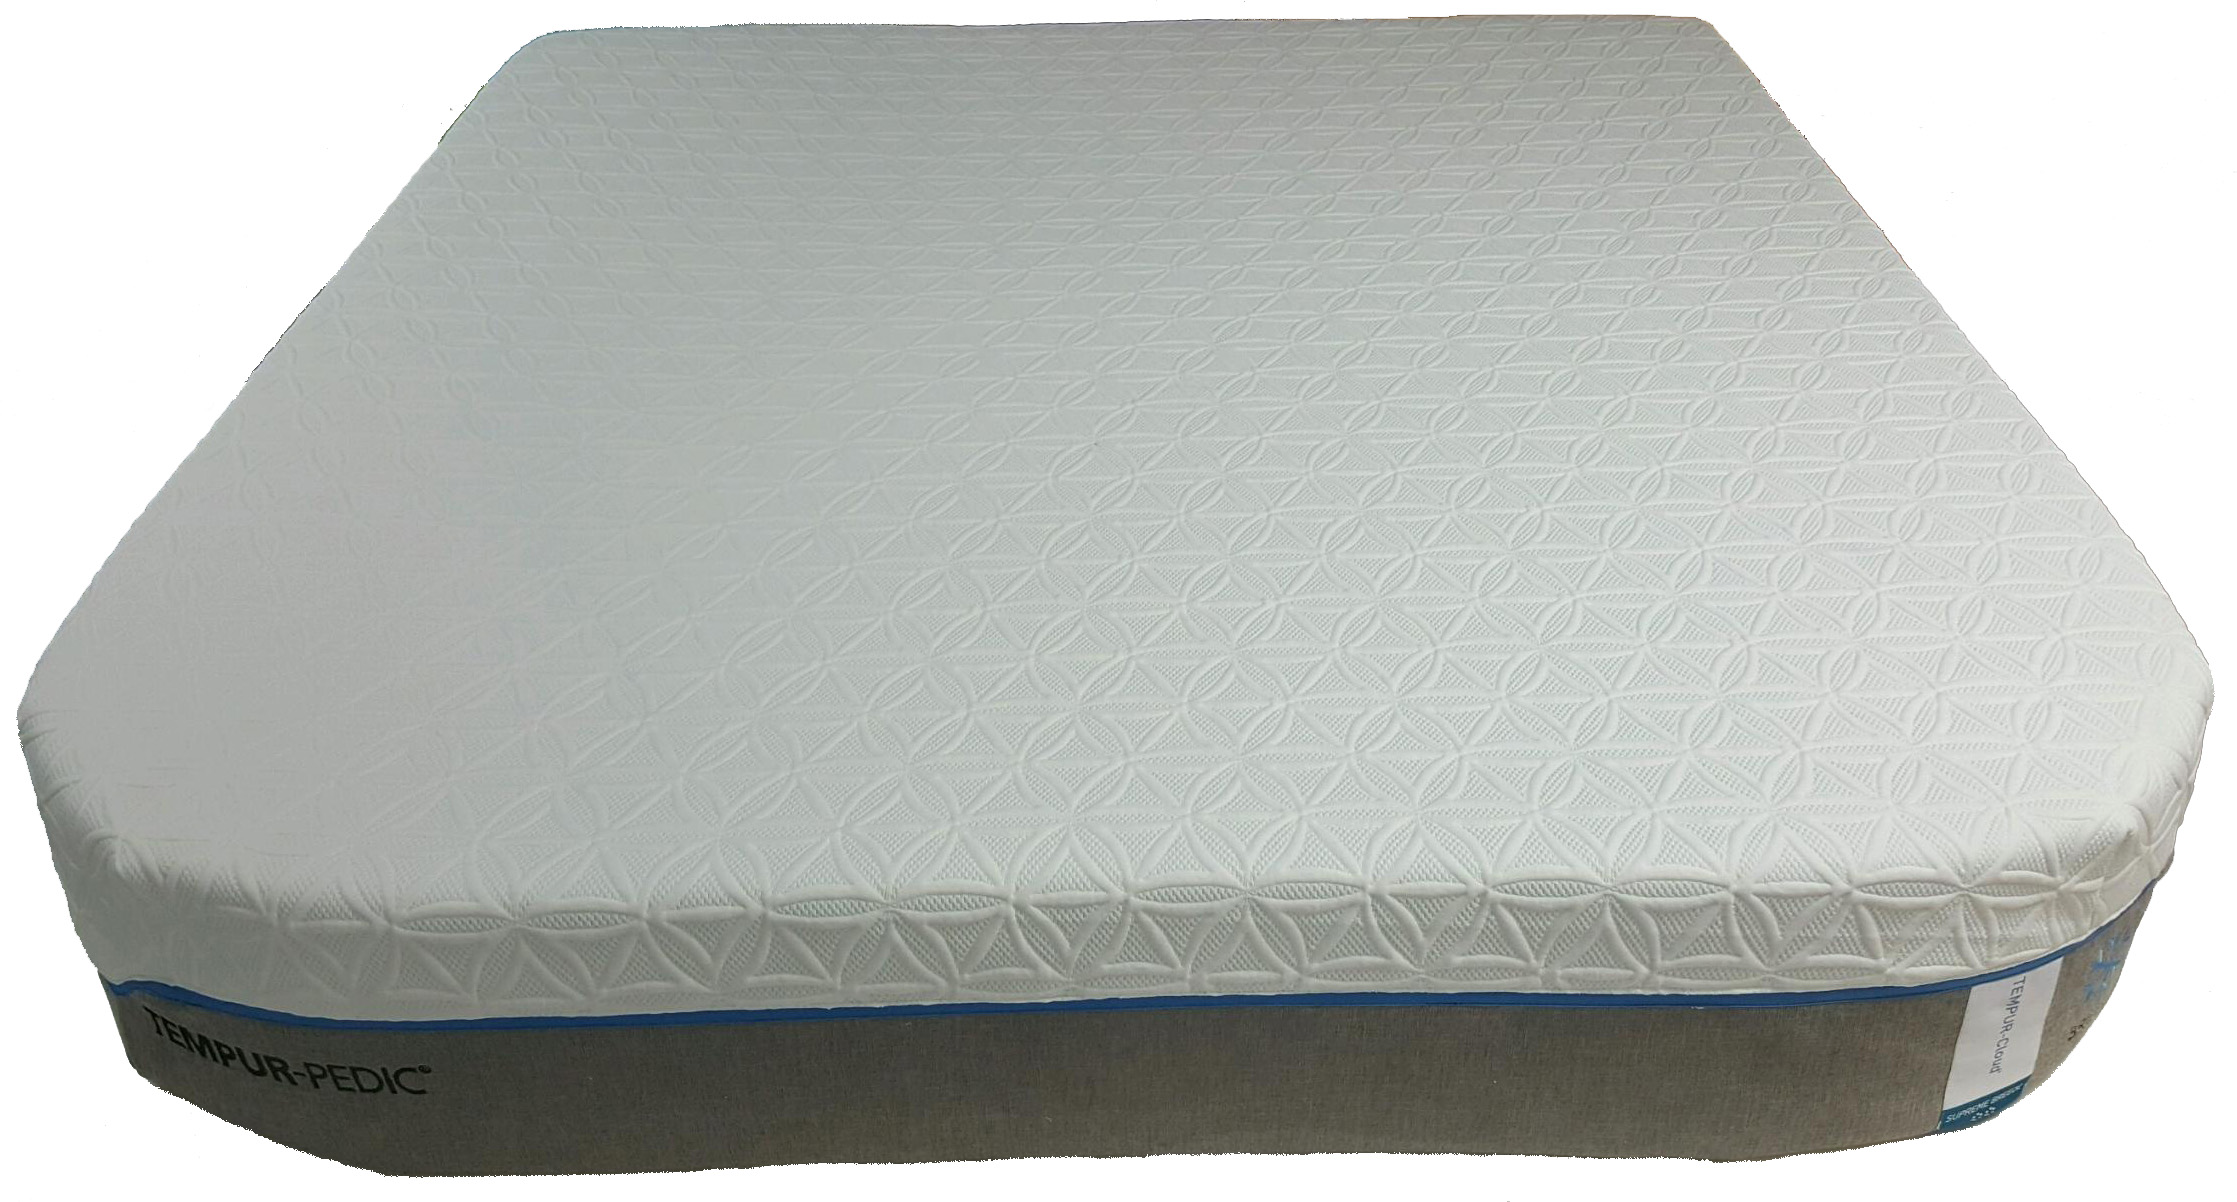 Tempur-Pedic mattress customized with Rounded corners for an RV